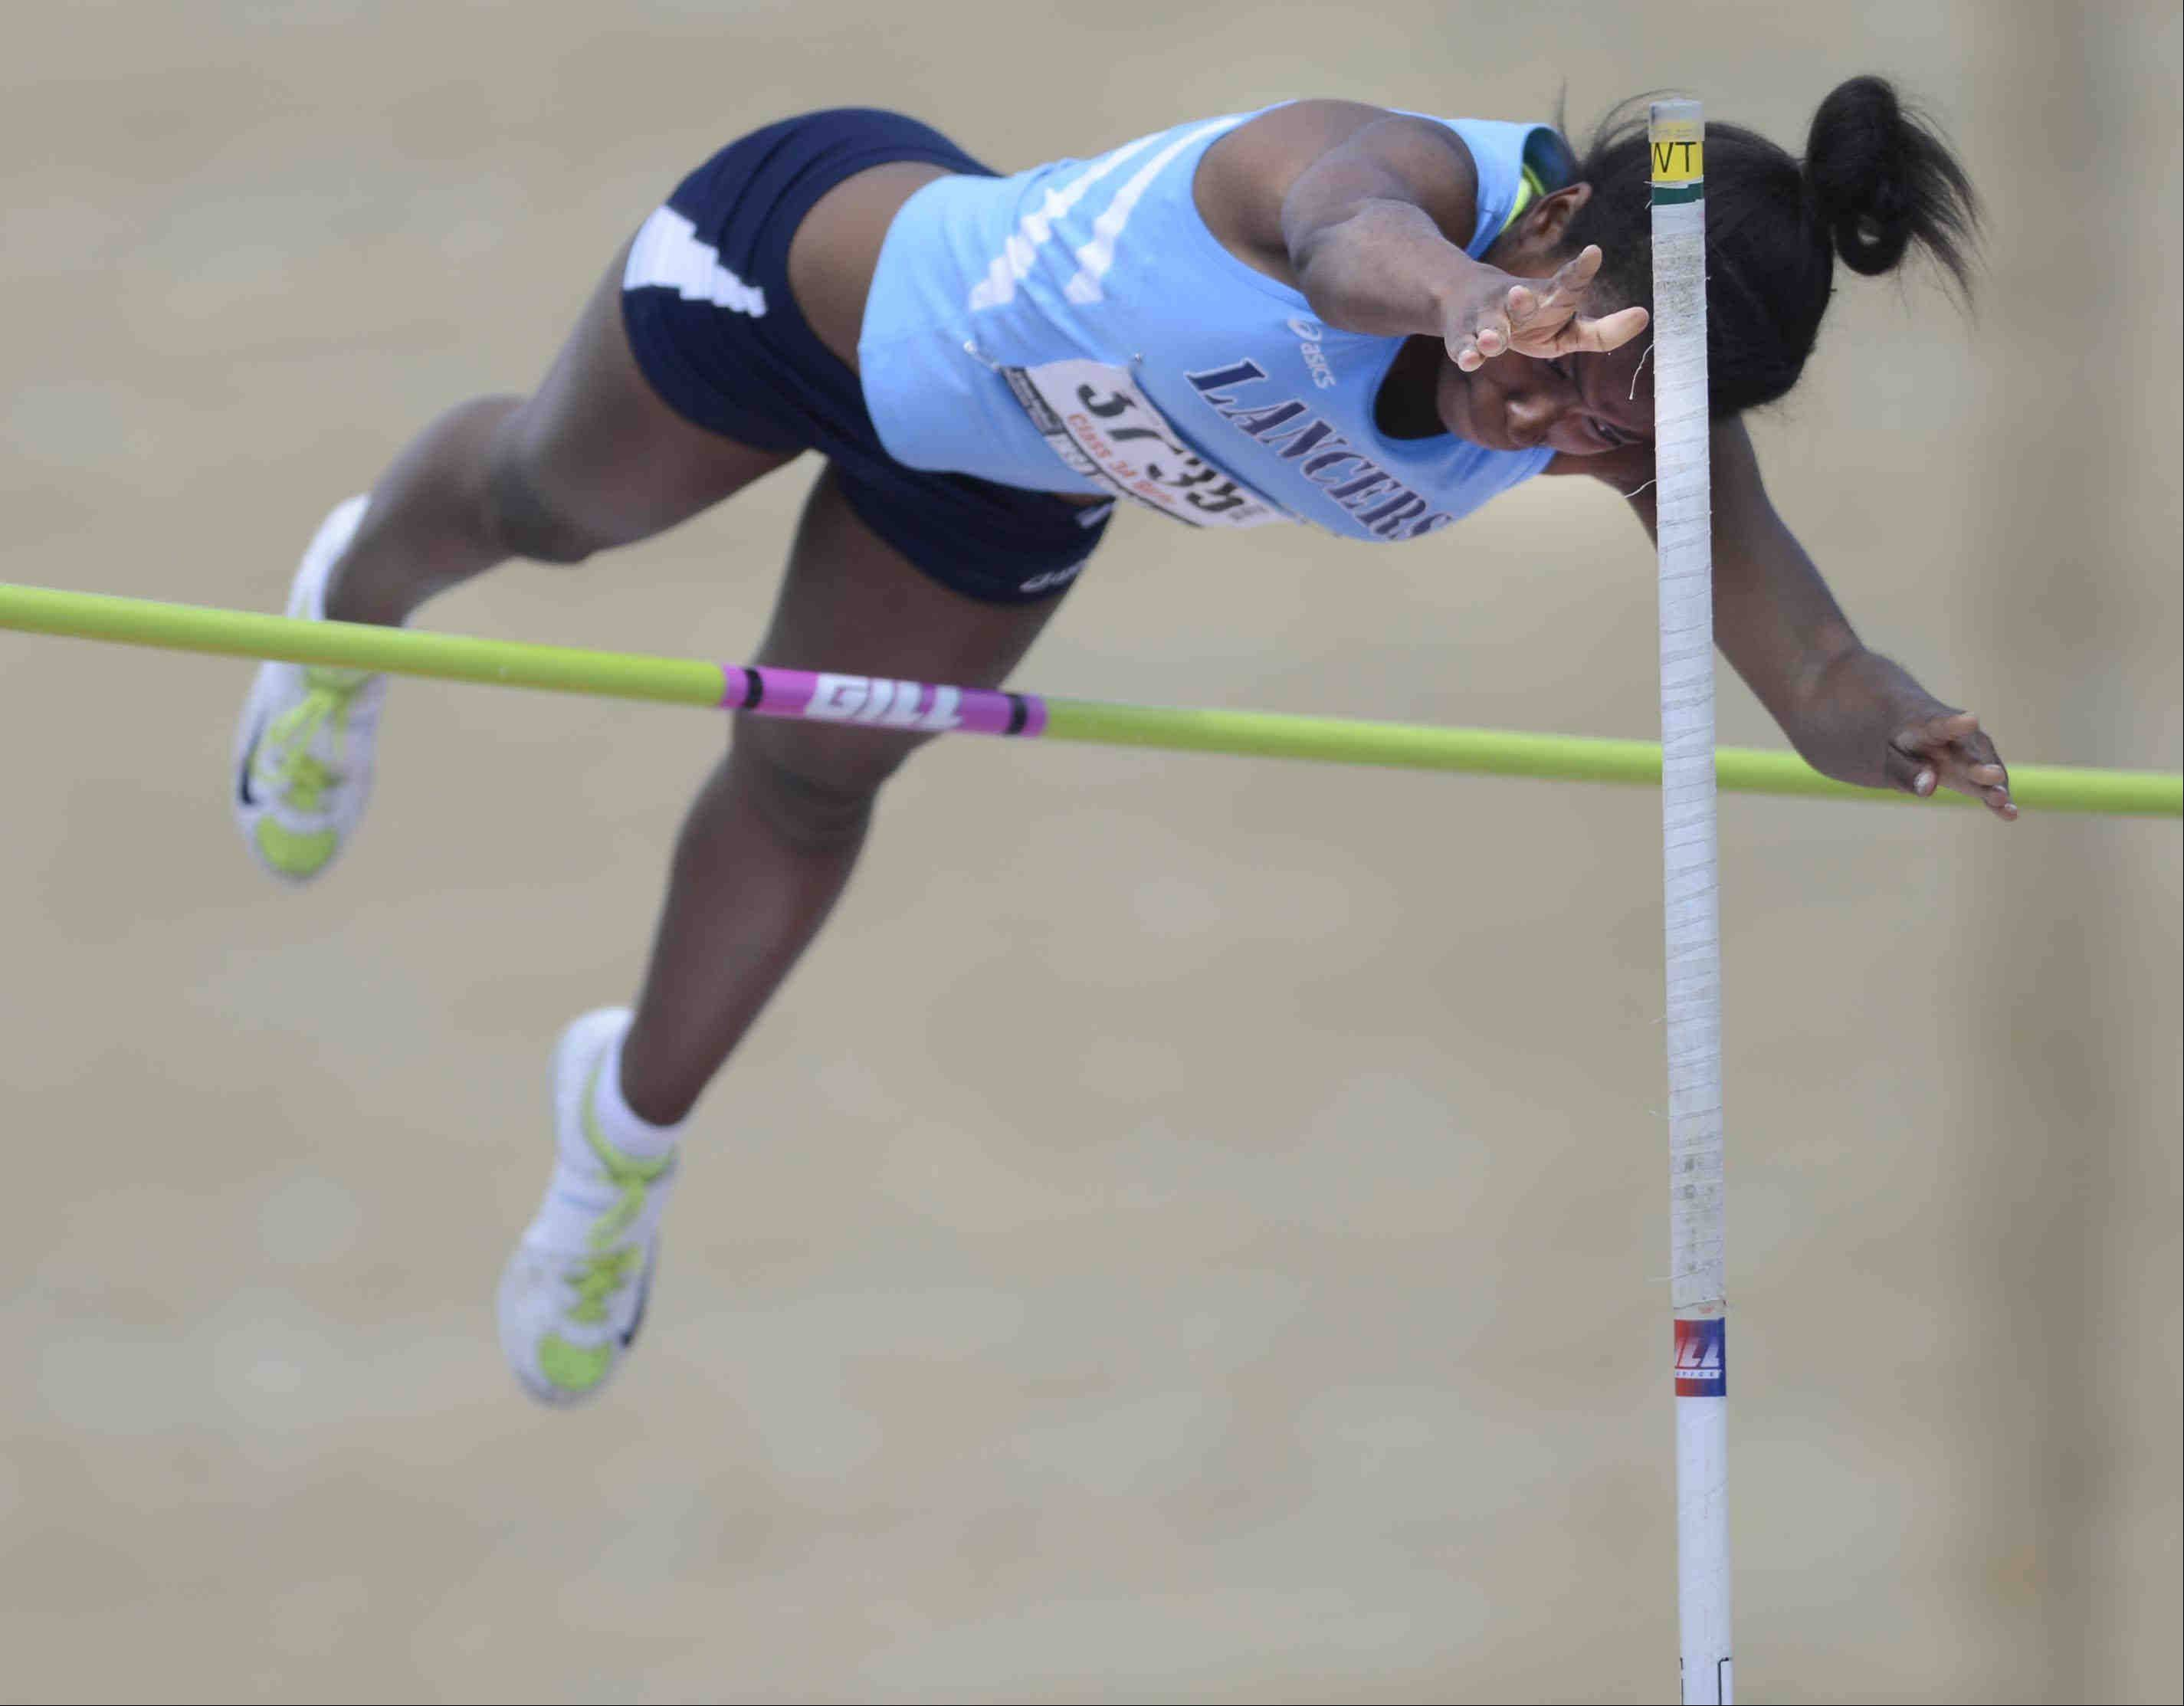 John Starks/jstarks@dailyherald.com Lake Park's Maya Golliday placed fourth in the pole vault Saturday at the Class 3A girls state track and field finals at O'Brien Stadium at Eastern Illinois University in Charleston.